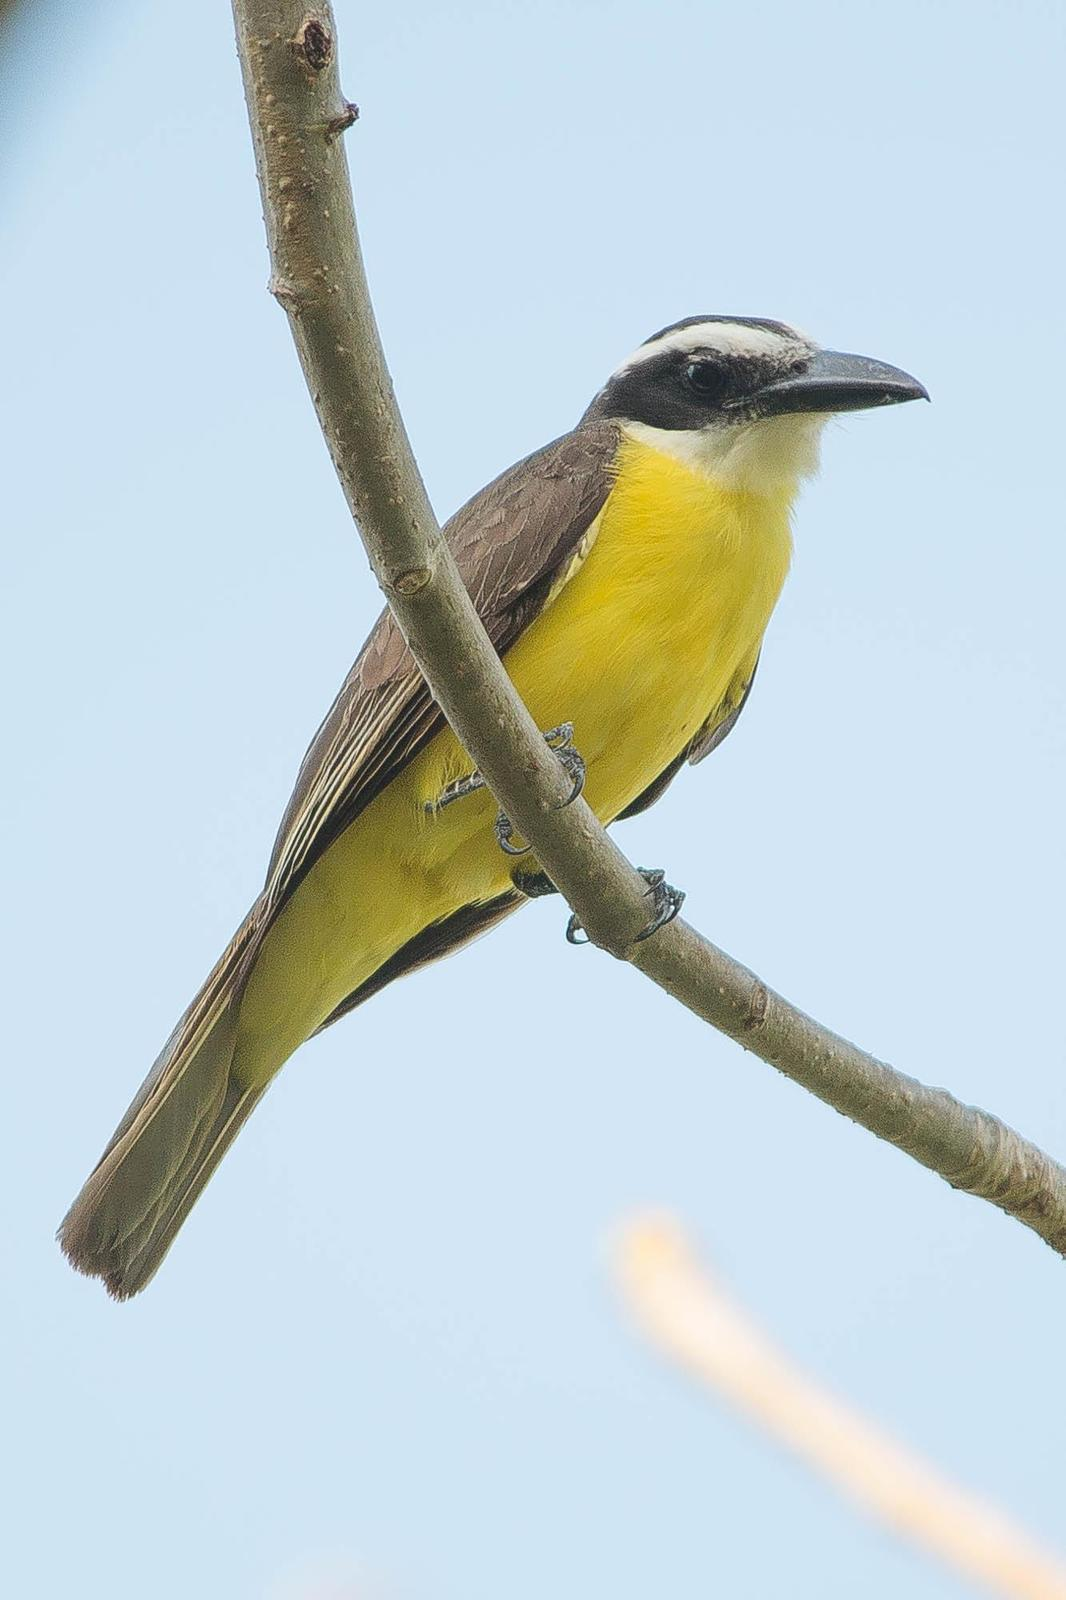 Boat-billed Flycatcher Photo by Marie-France Rivard